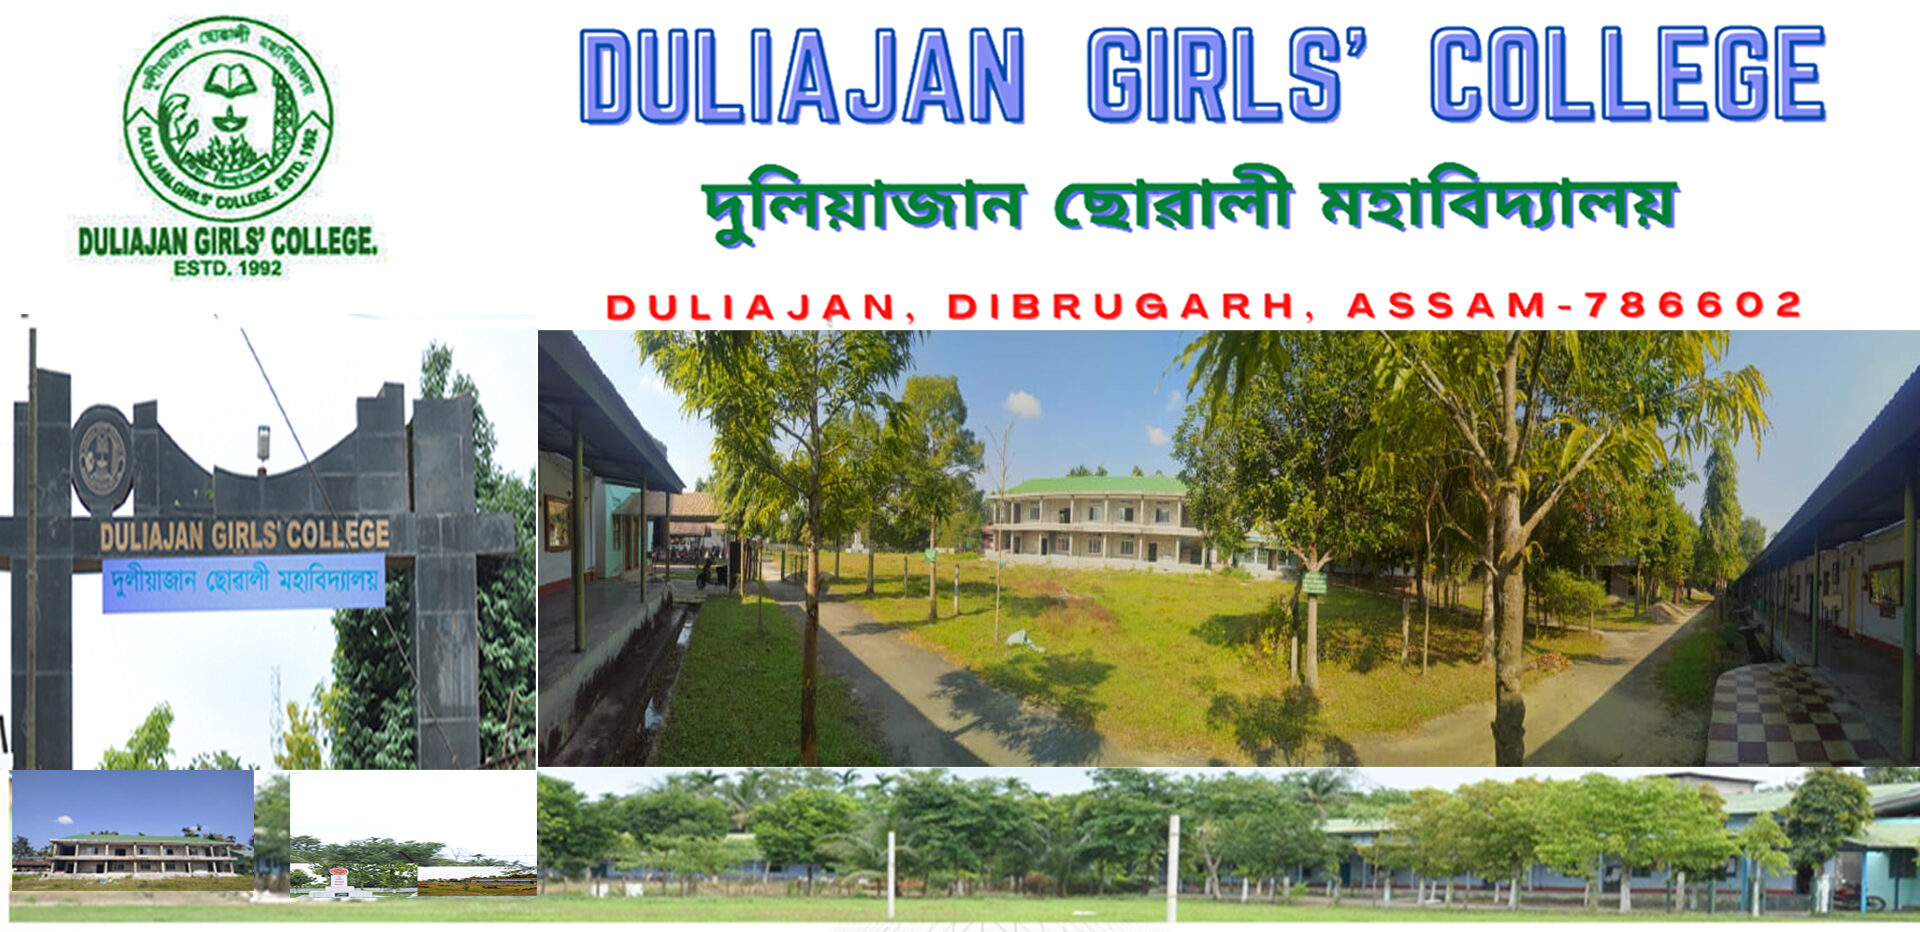 DULIAJAN GIRLS' COLLEGE